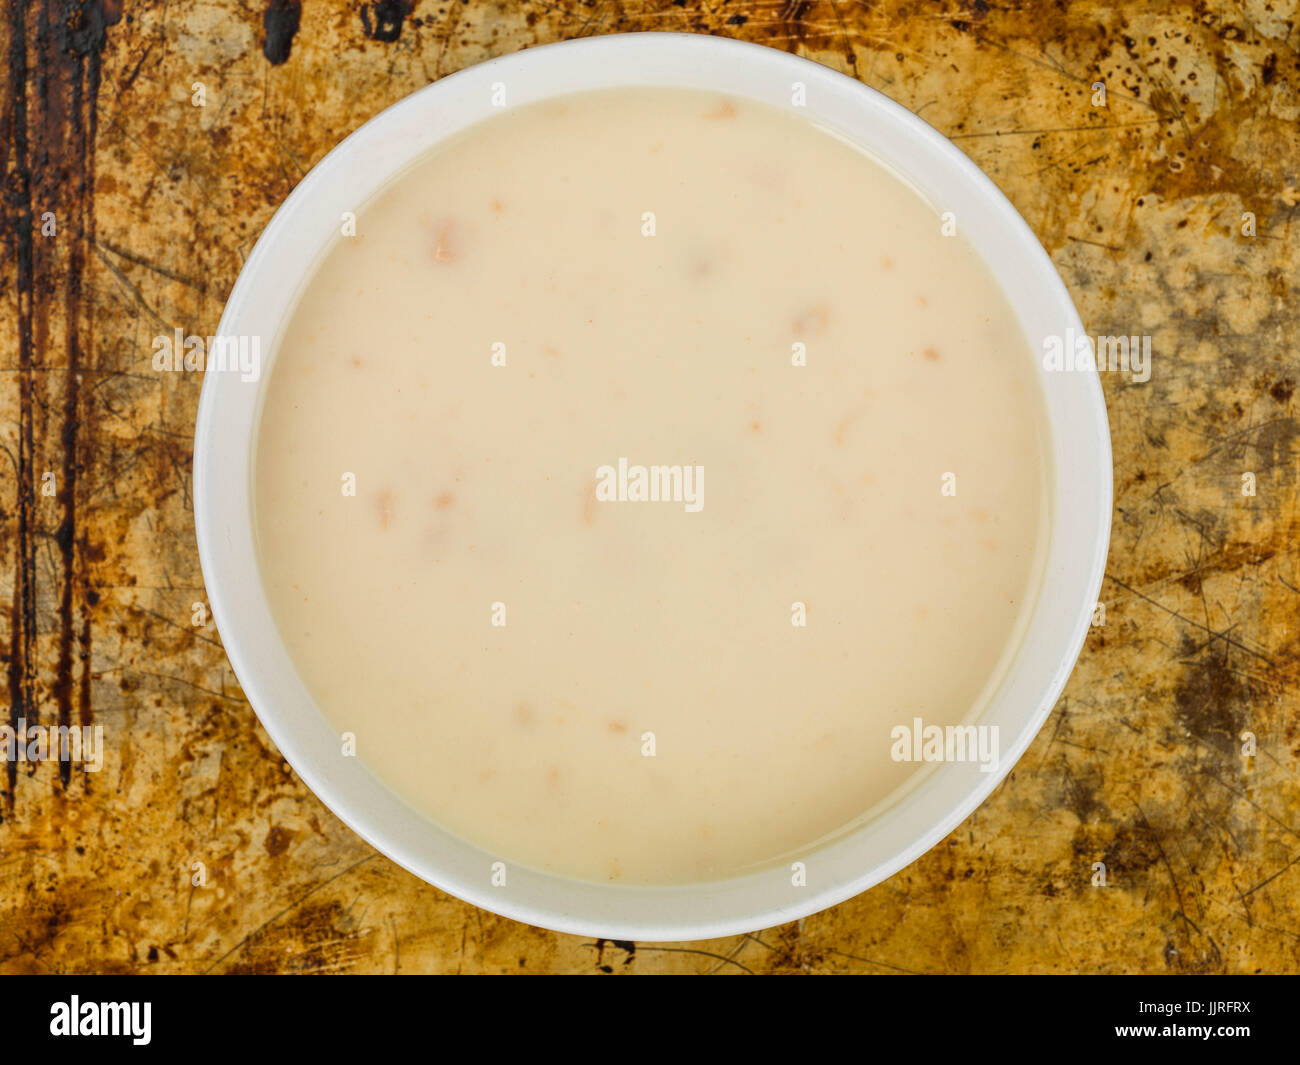 Bowl of Cream of Chicken Soup Against a Distressed Used Oven Tray - Stock Image